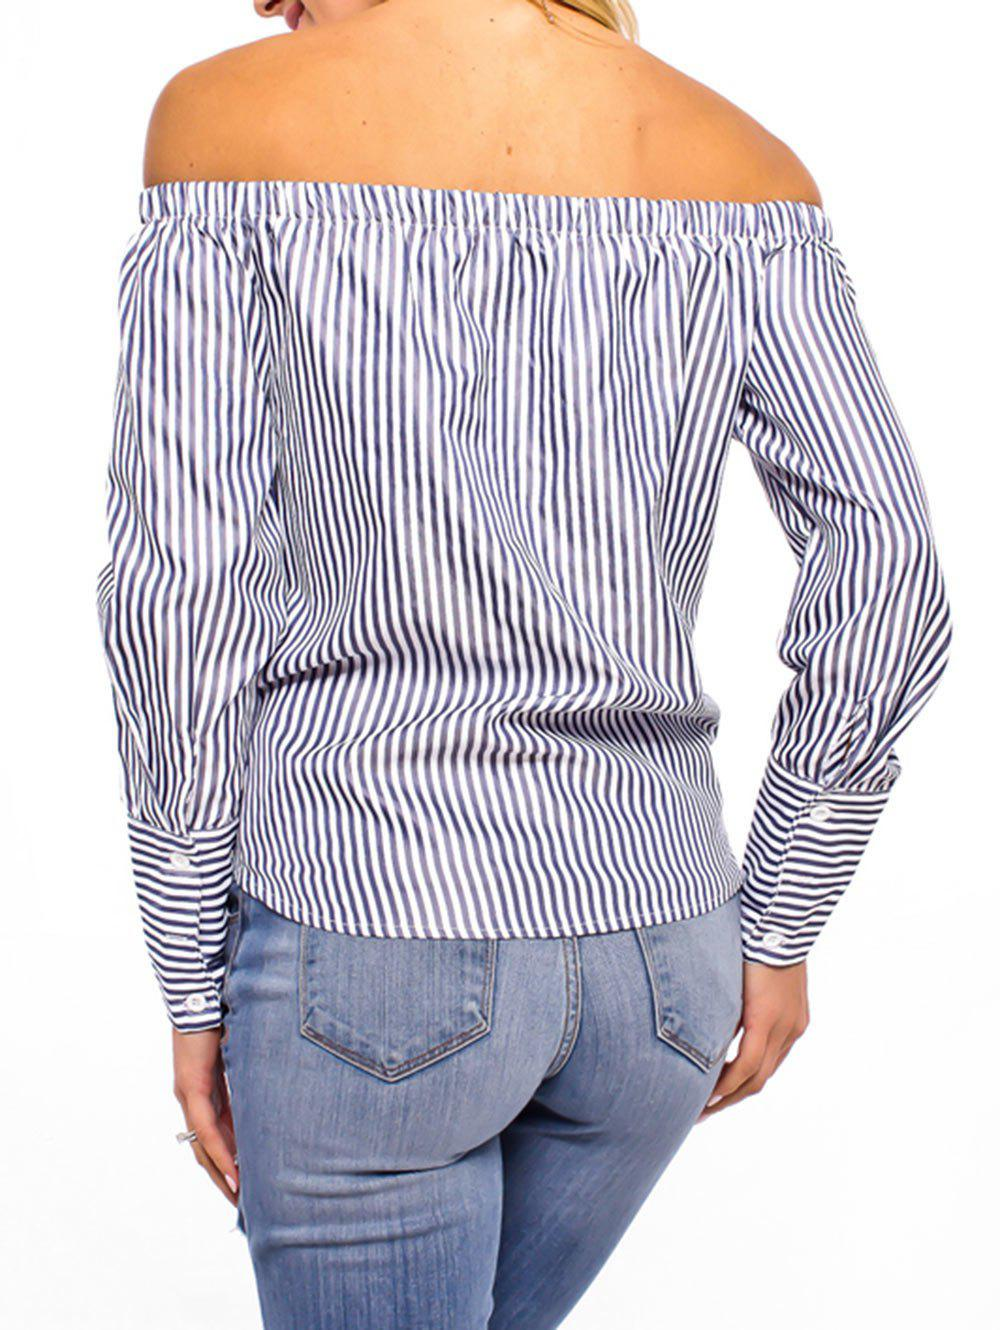 Off The Shoulder Striped Tie Up Blouse - CADETBLUE 2XL